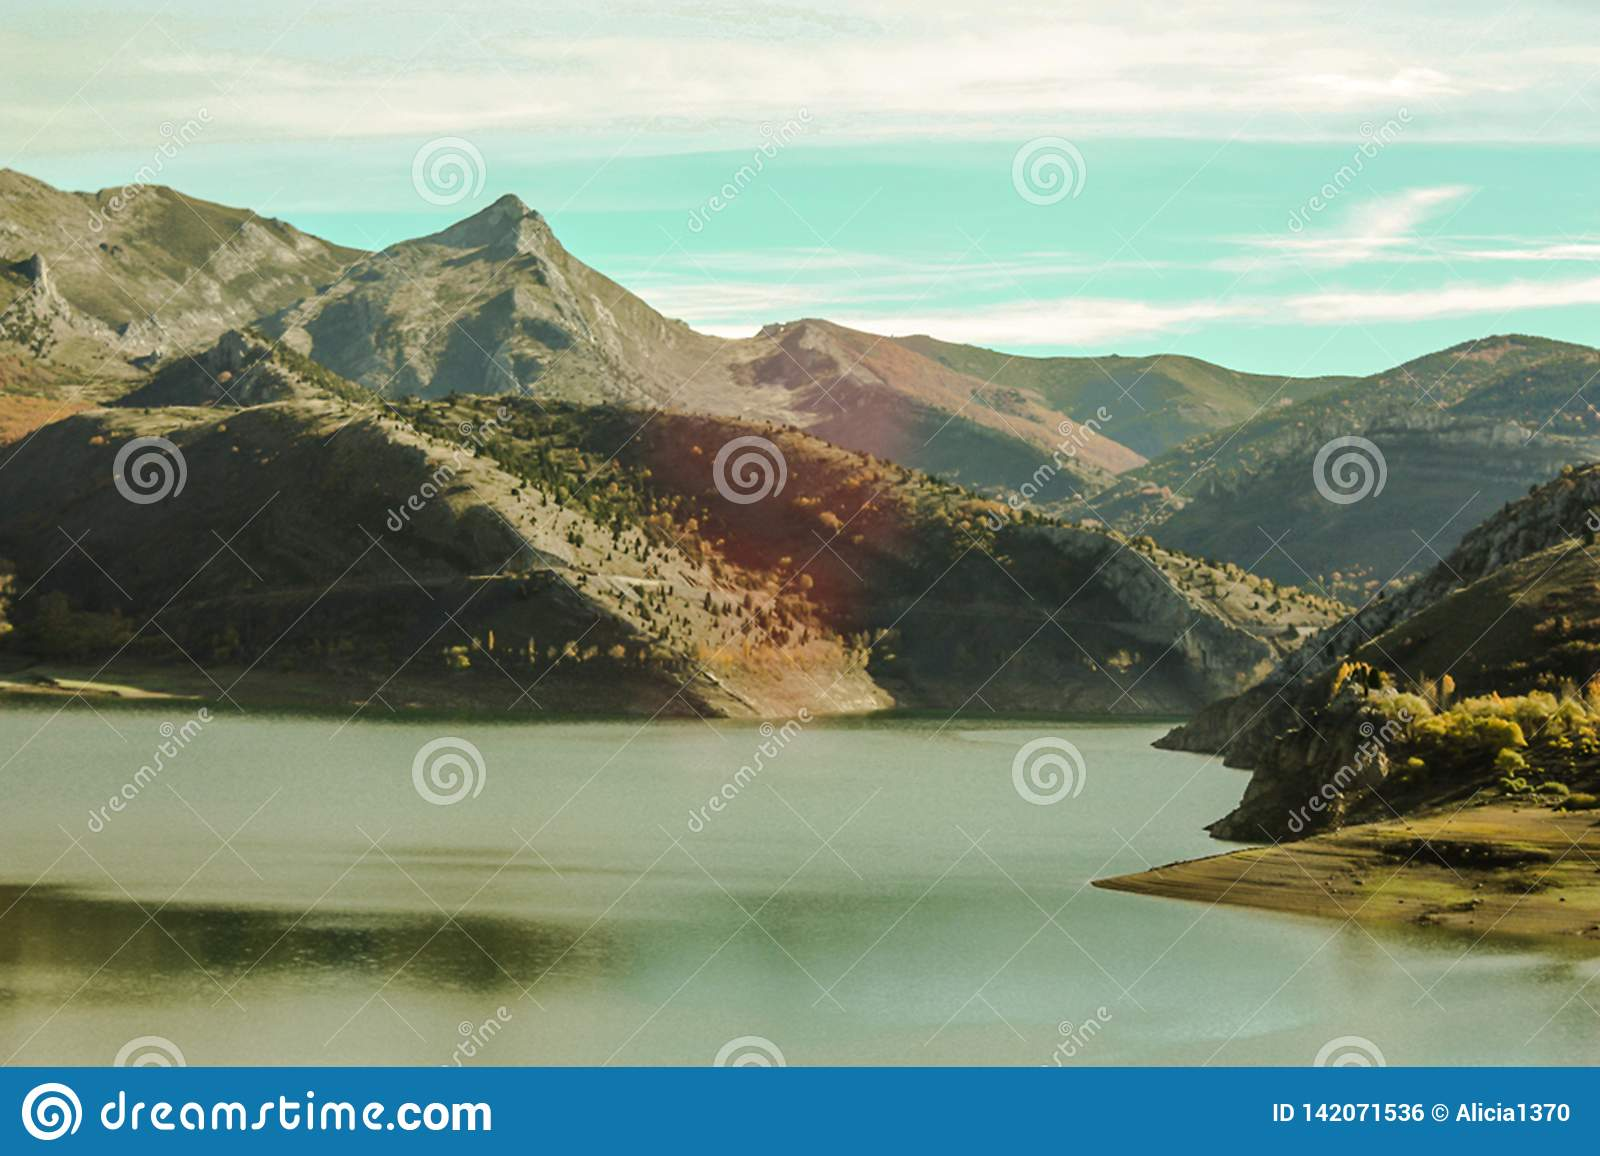 Mountainous natural landscape with lake in foreground, land of different colors